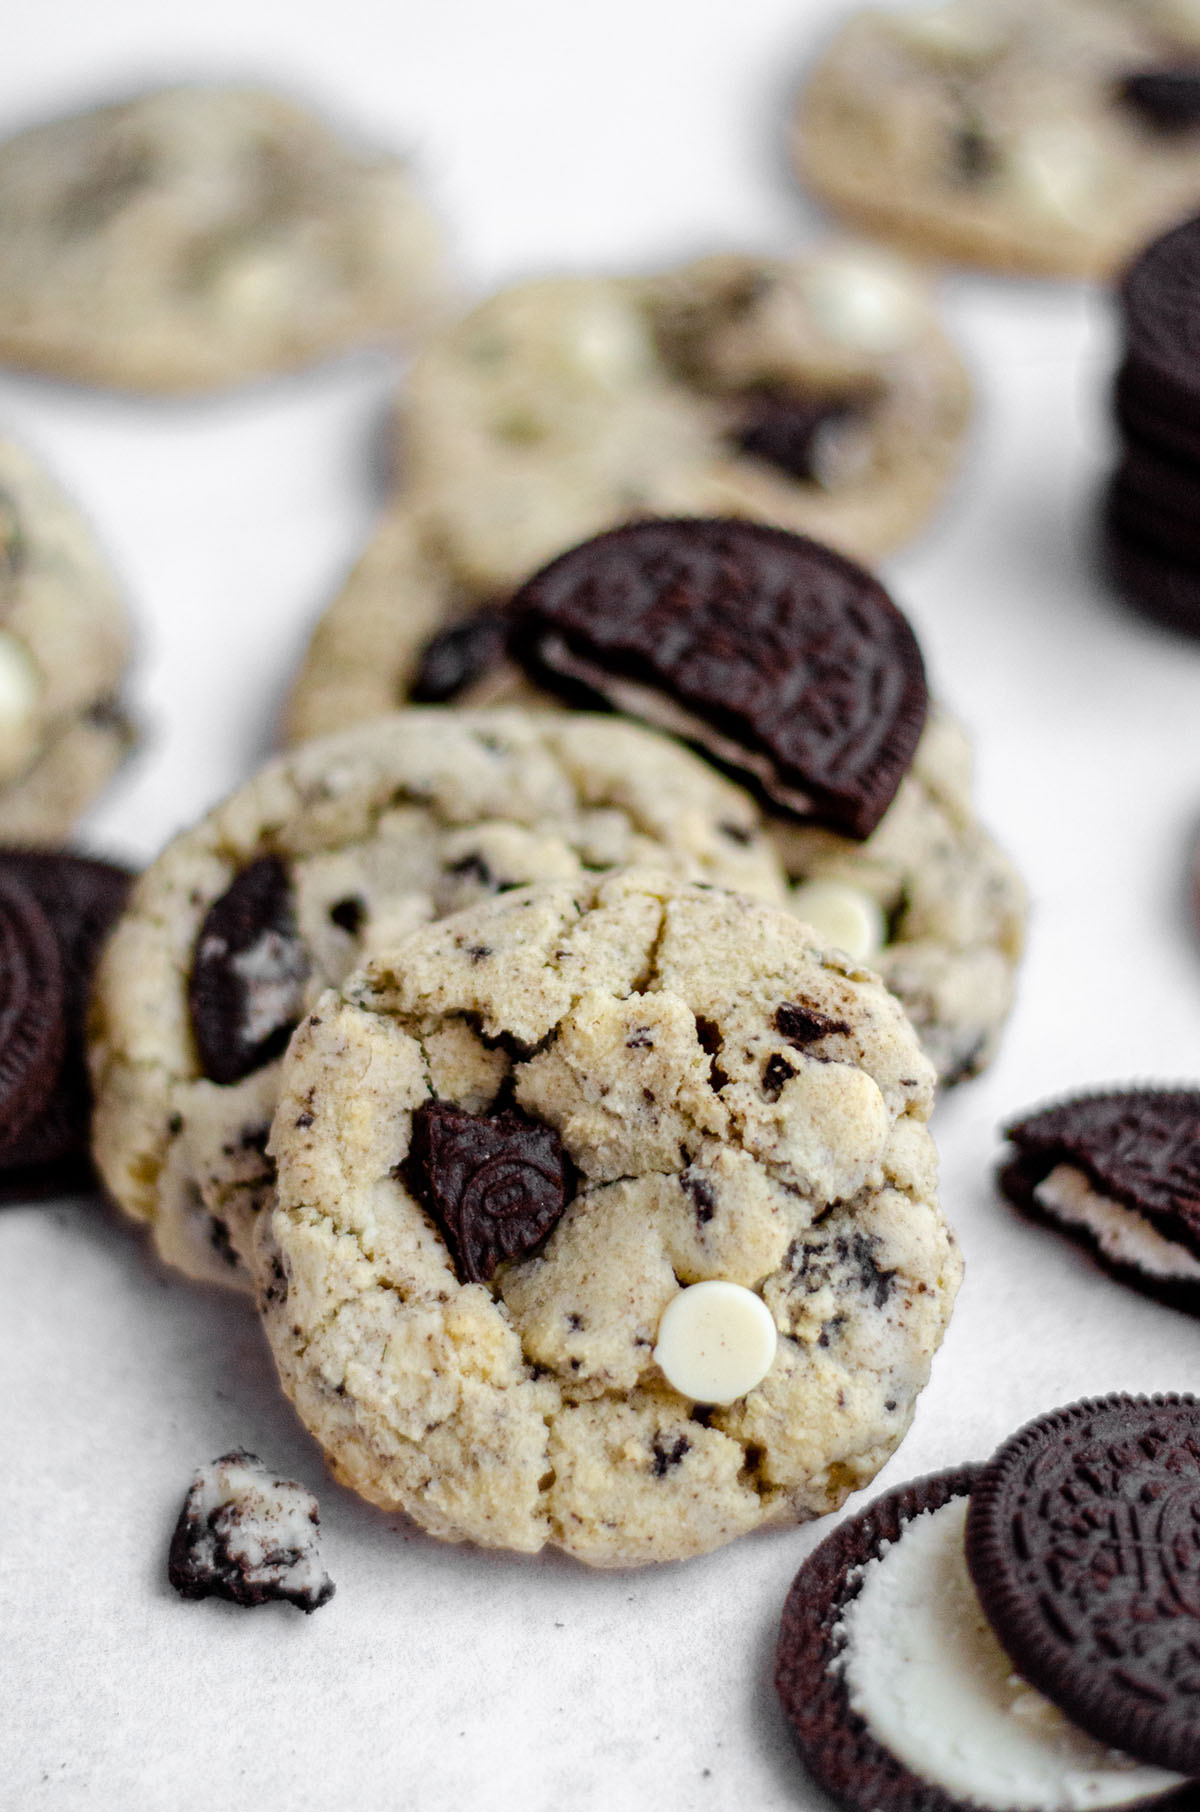 cookies and cream cookies on a white surface with oreo cookies scattered around it